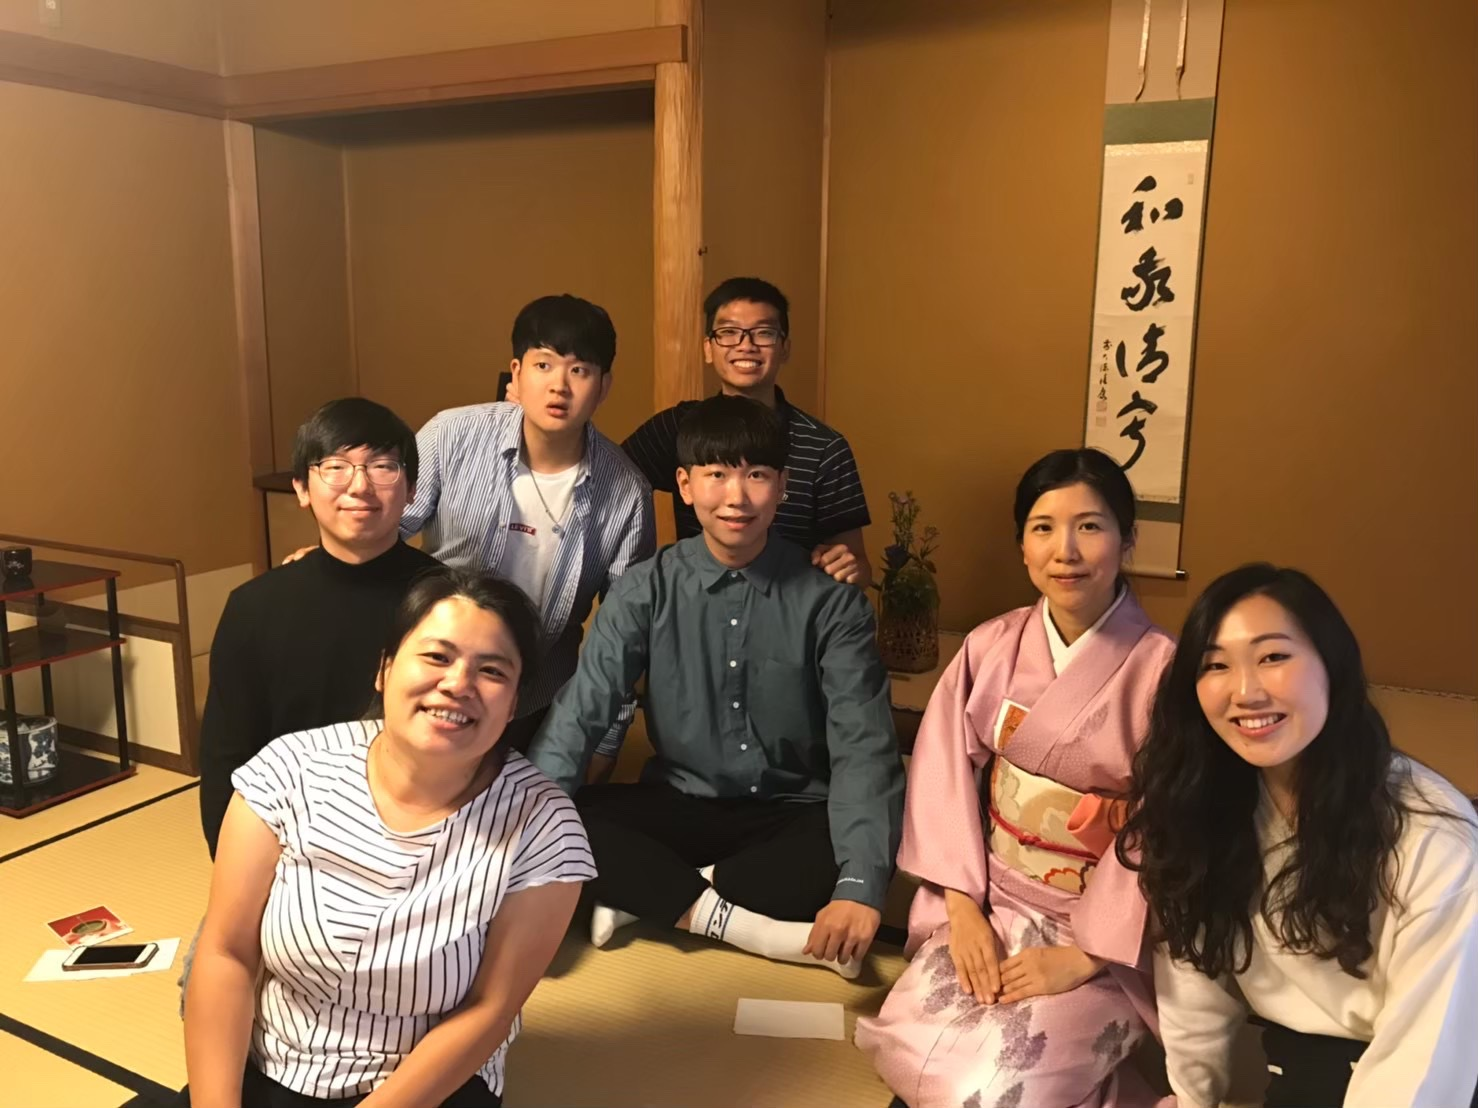 Senior international business and marketing major Jessica Ha (bottom right) studied Japanese culture and language at Senshu University in fall 2019 with the help of the Edythe Wiebers International Study Program Scholarship.